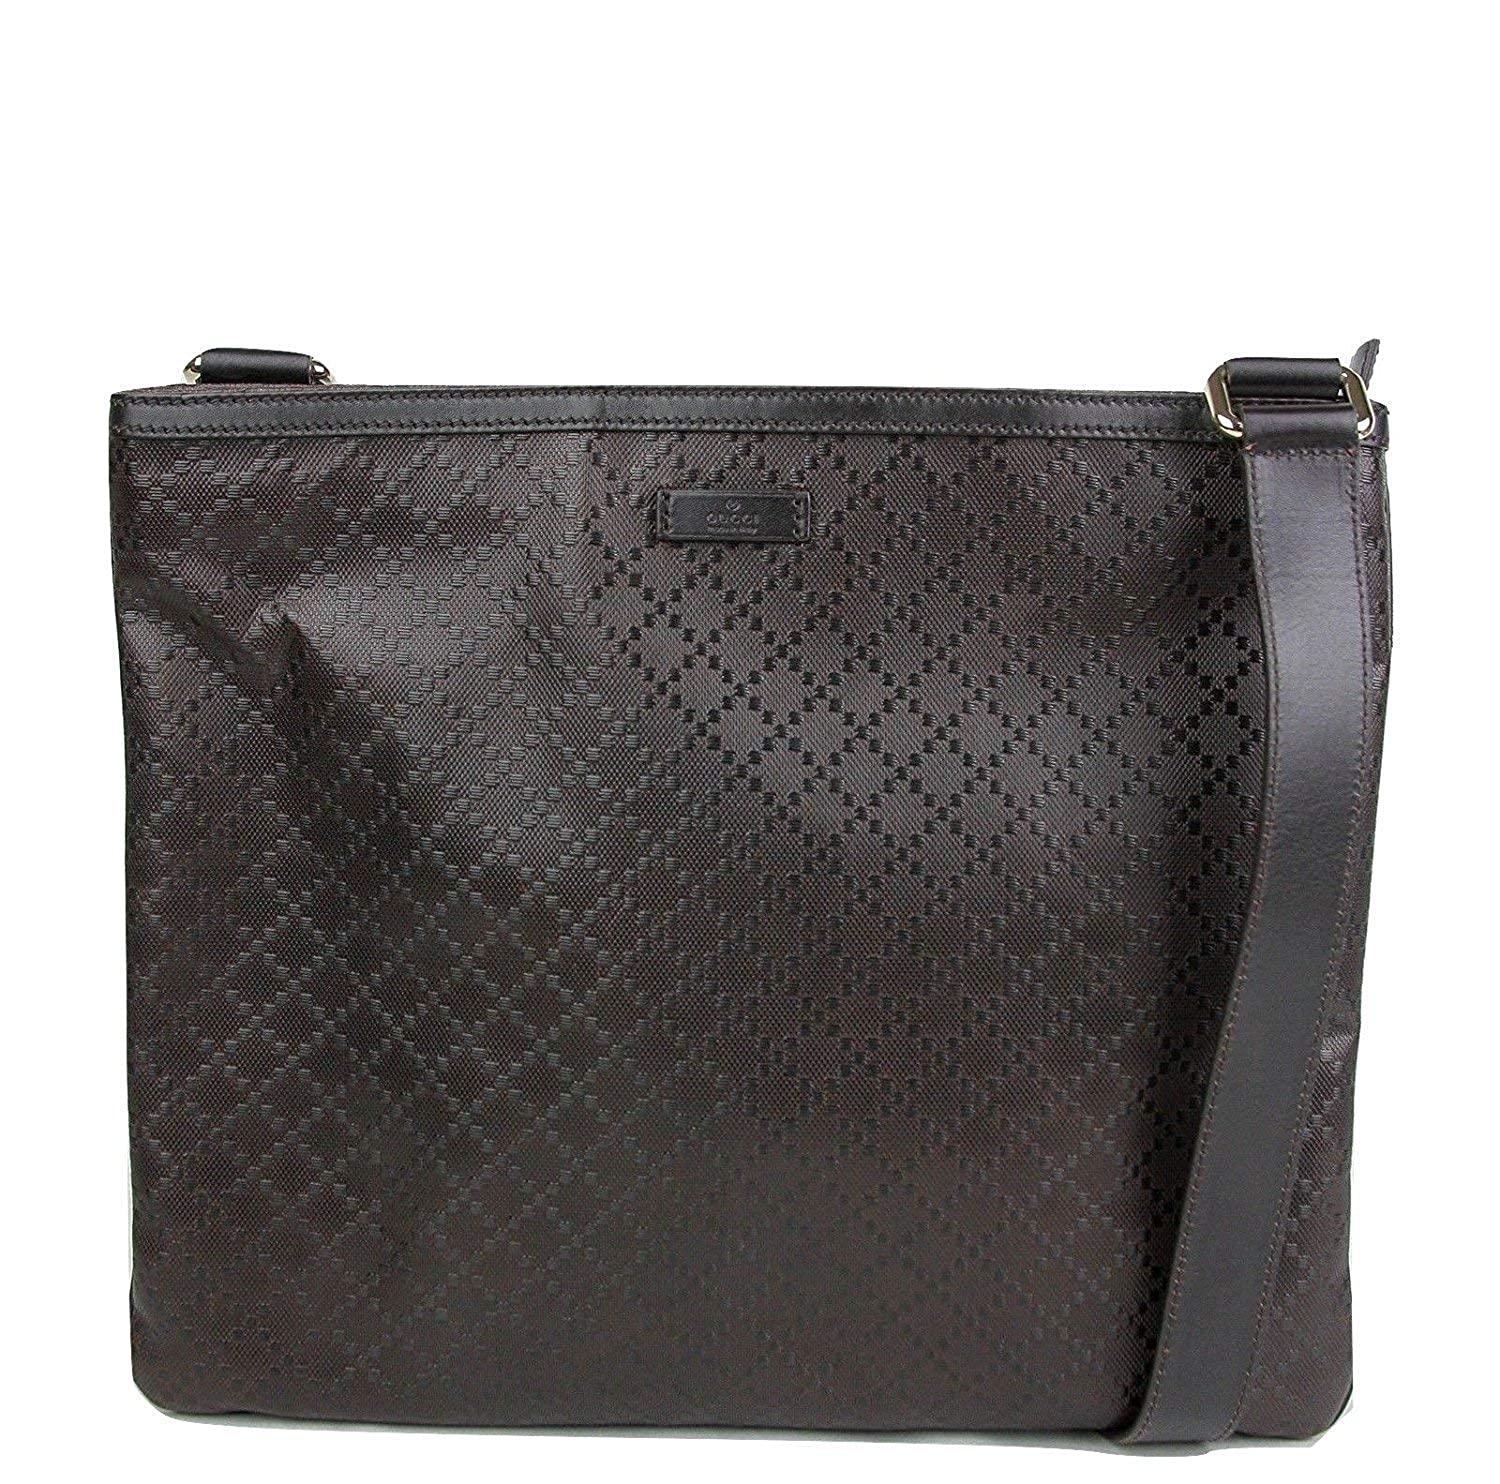 fdbe12bf7993d3 Amazon.com: Gucci Hilary Dark Brown Lux Diamante Leather Messenger Bag  201446 2044: Shoes